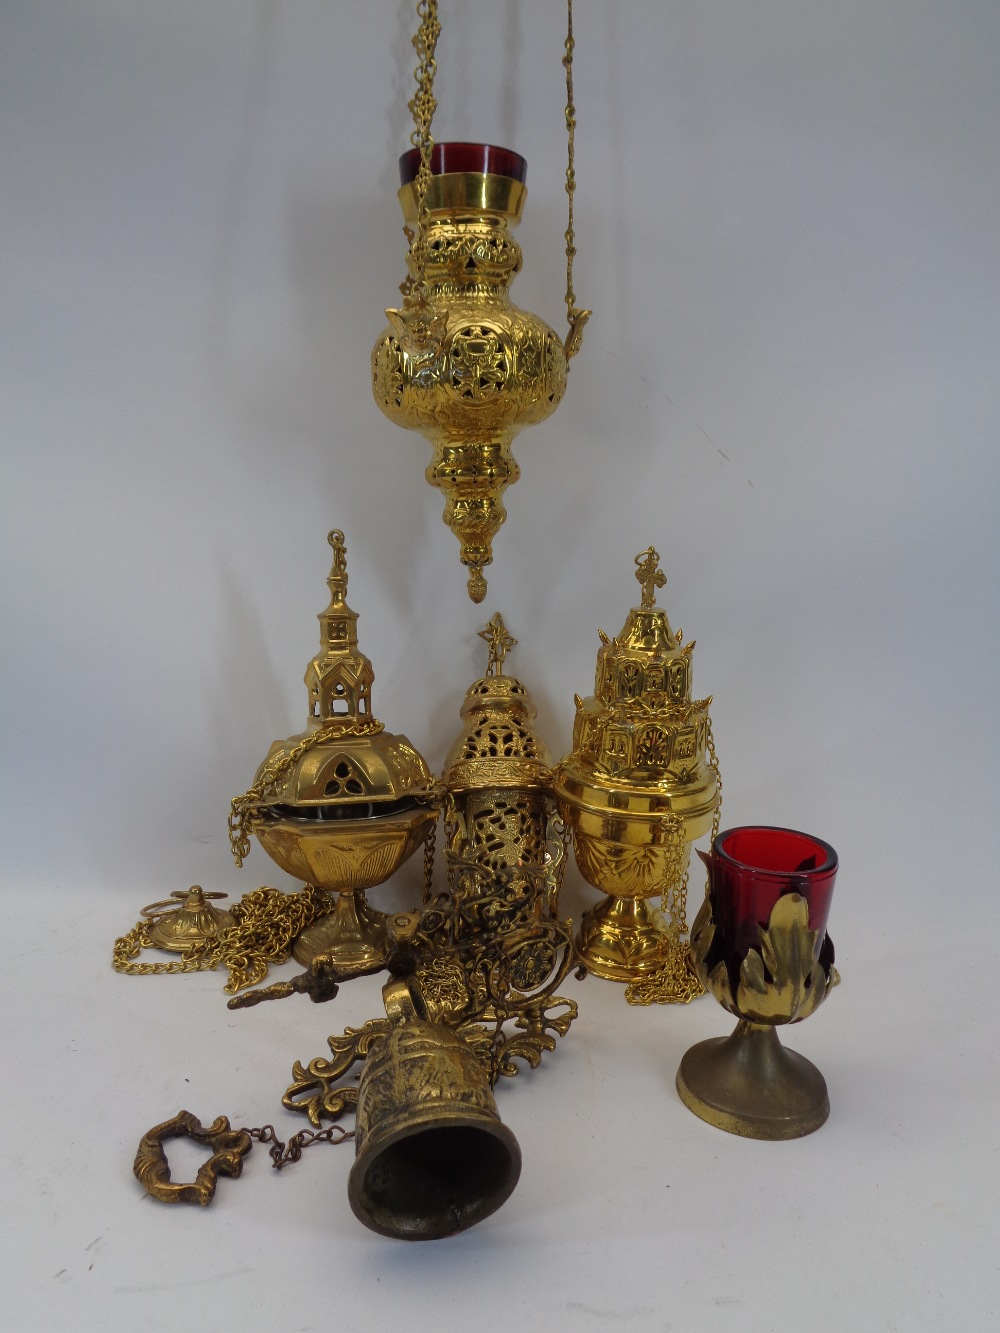 EASTERN TYPE ECCLESIASTICAL INCENSE BURNING BRASSWARE - a mixed selection